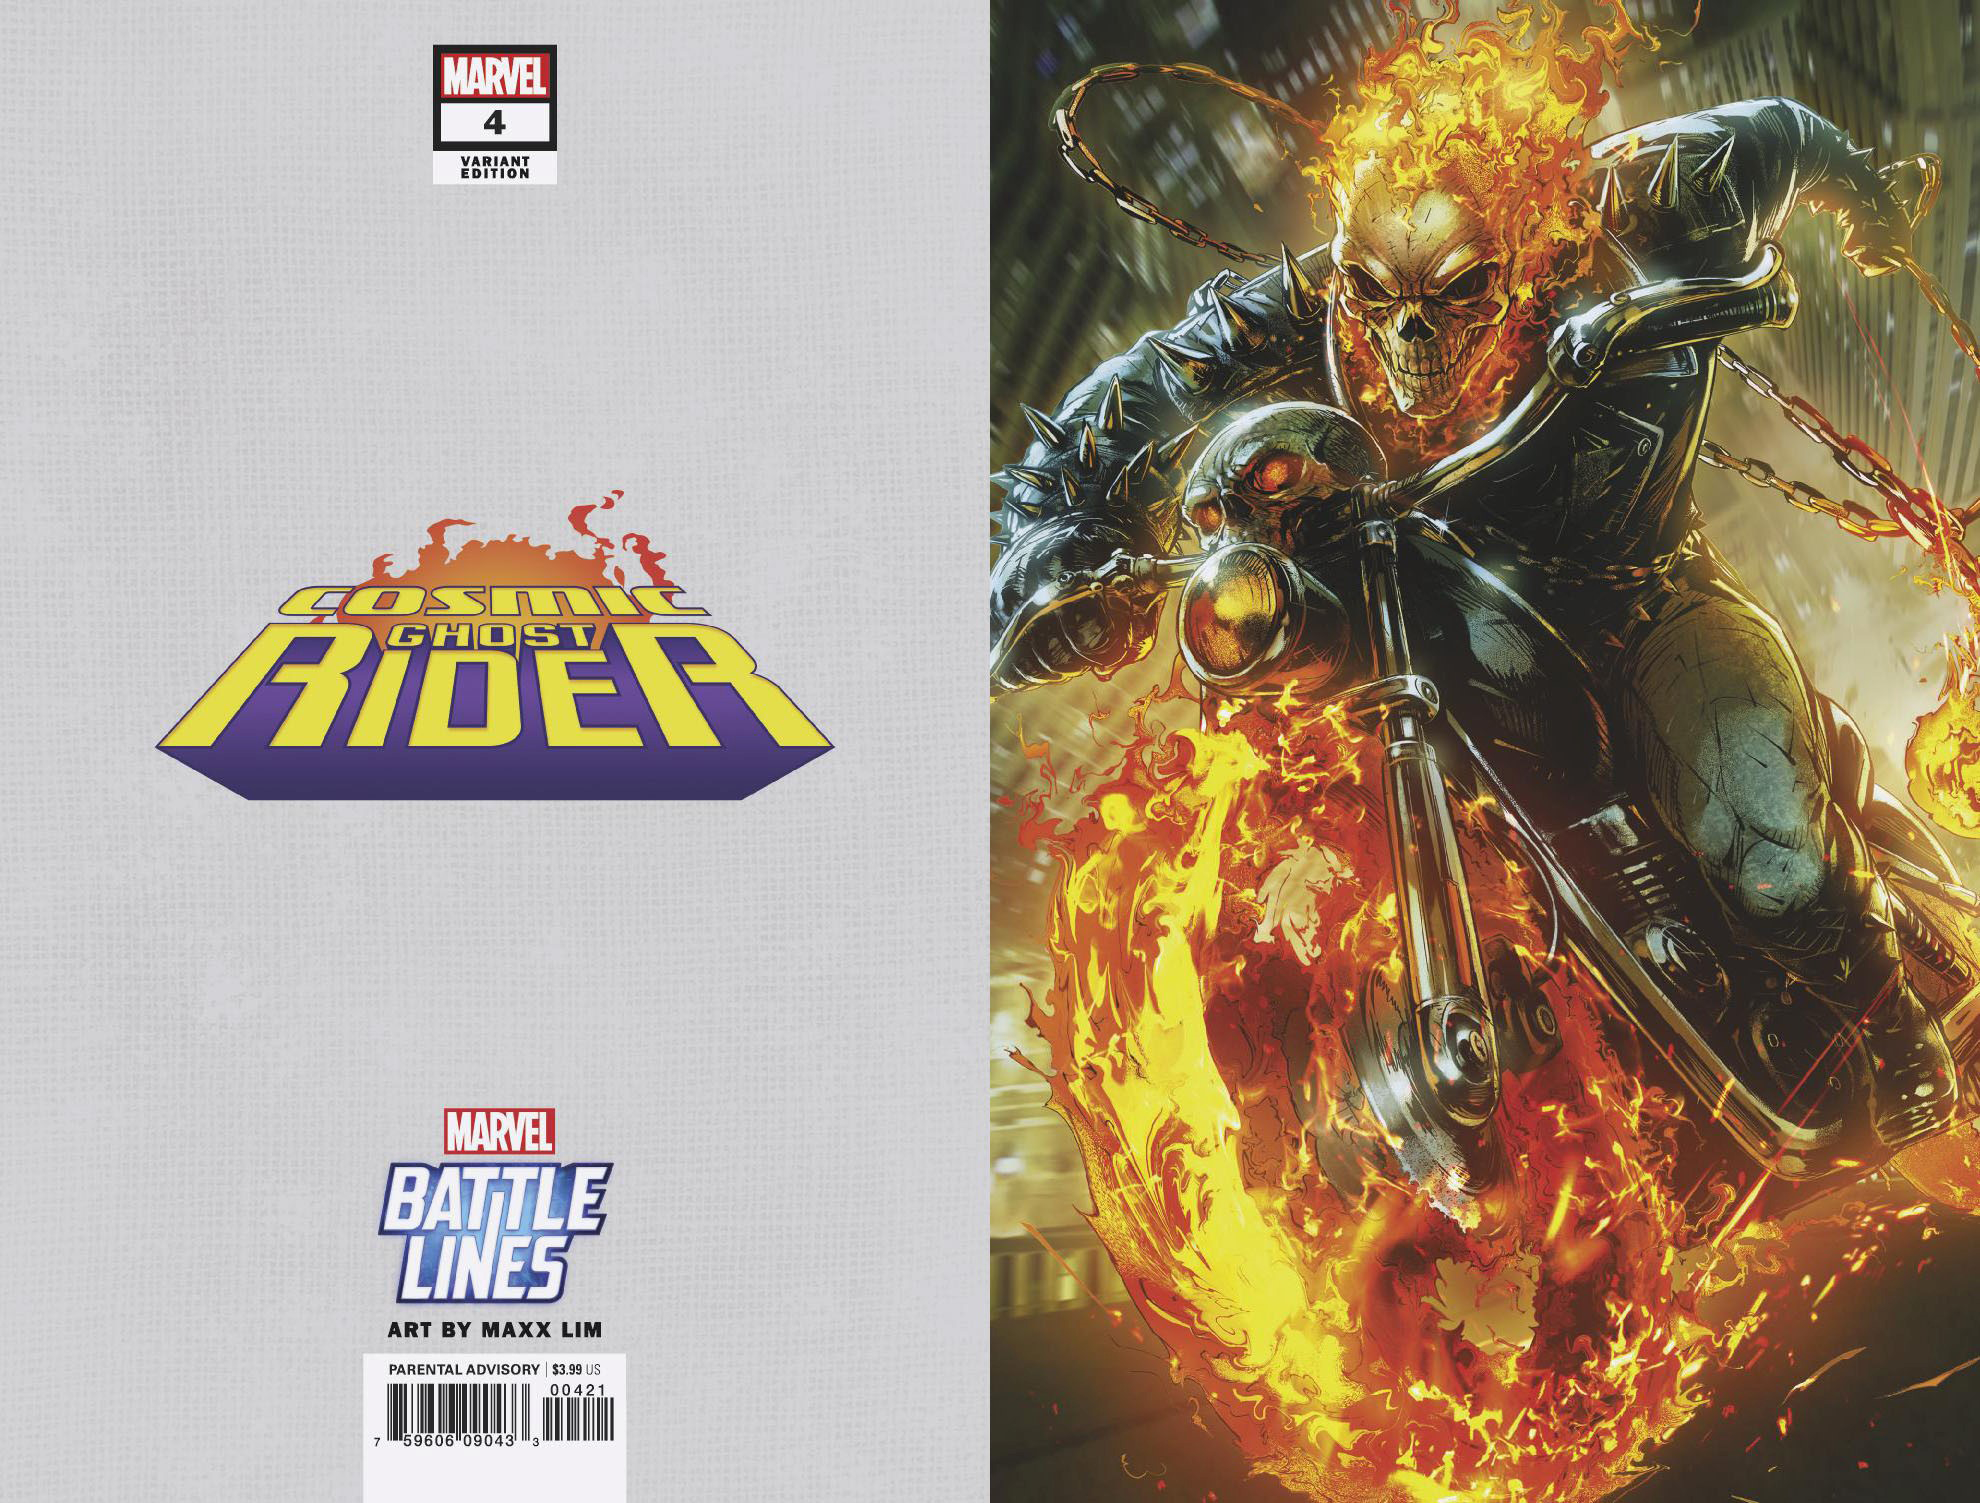 COSMIC GHOST RIDER #4 (OF 5) MAXX LIM MARVEL BATTLE LINES VA